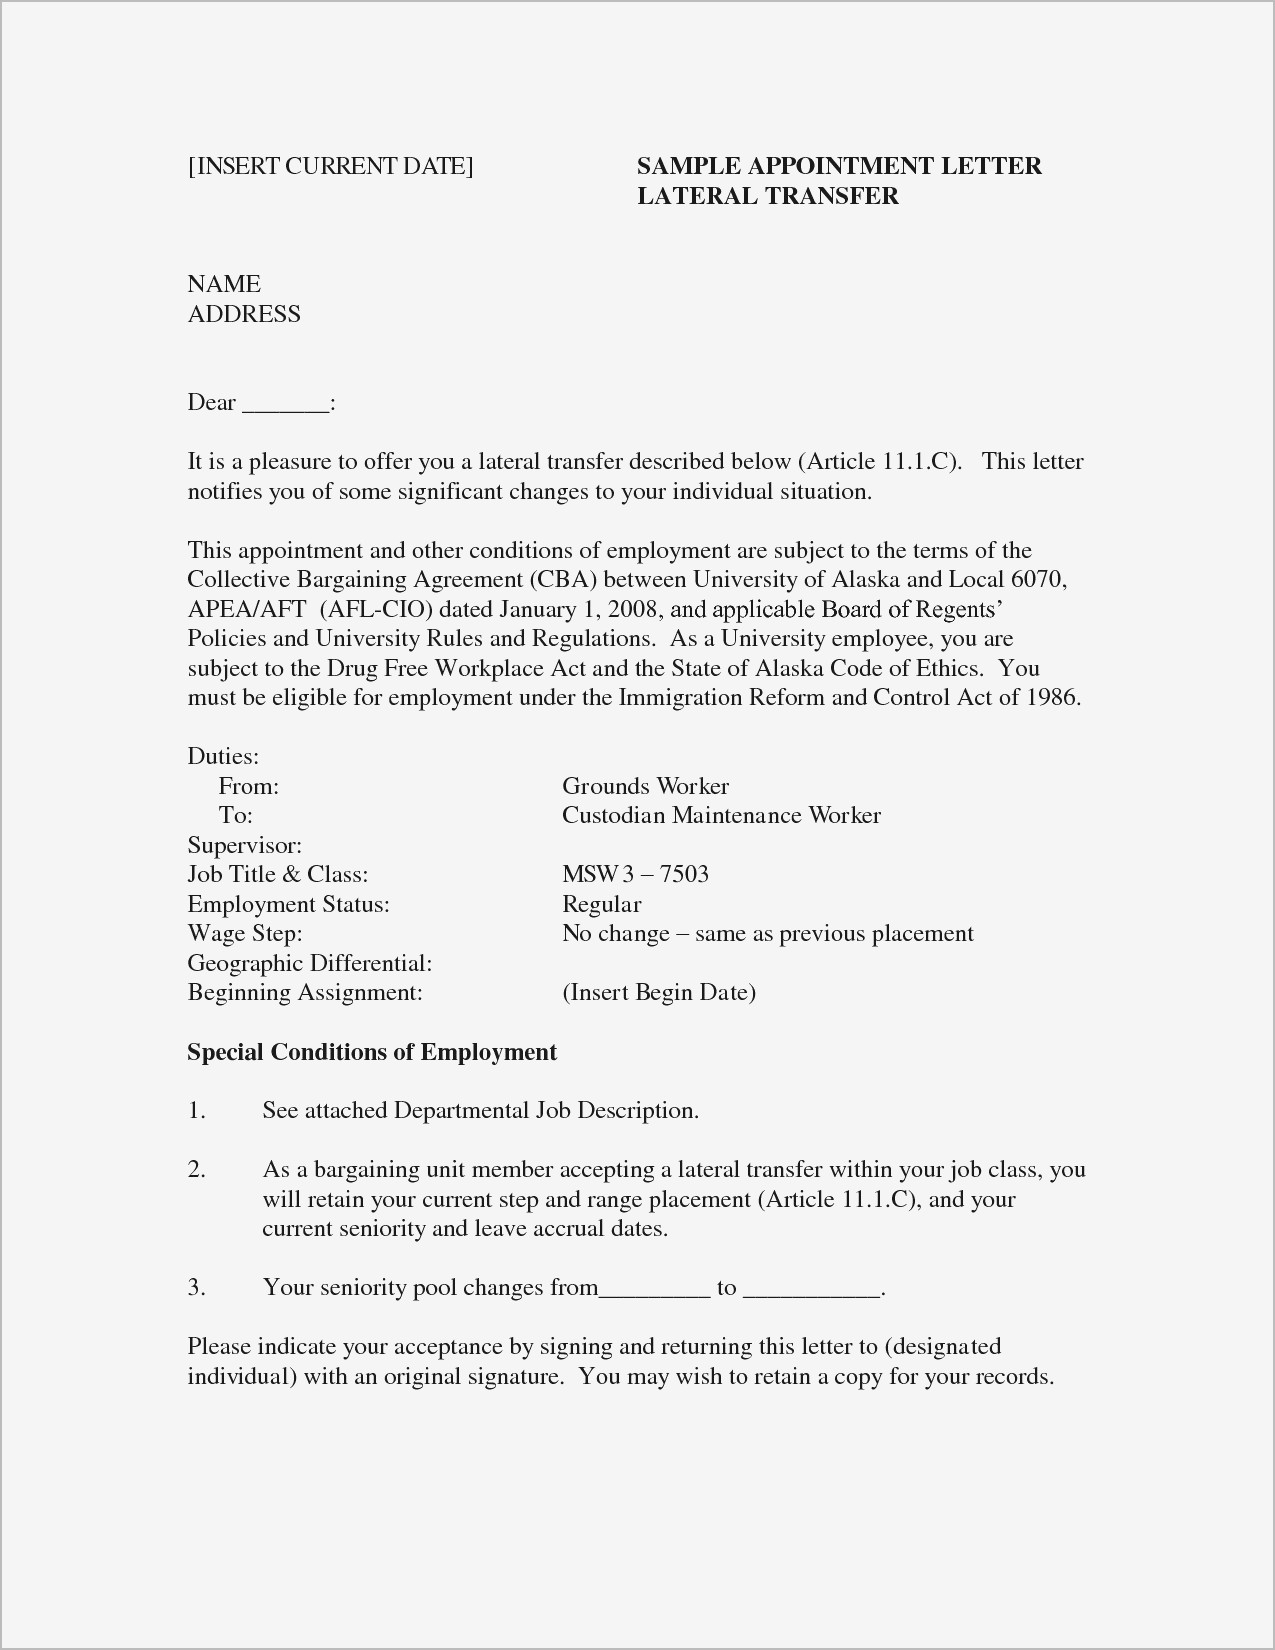 sample child support letter template Collection-sample child support letter template 3-o